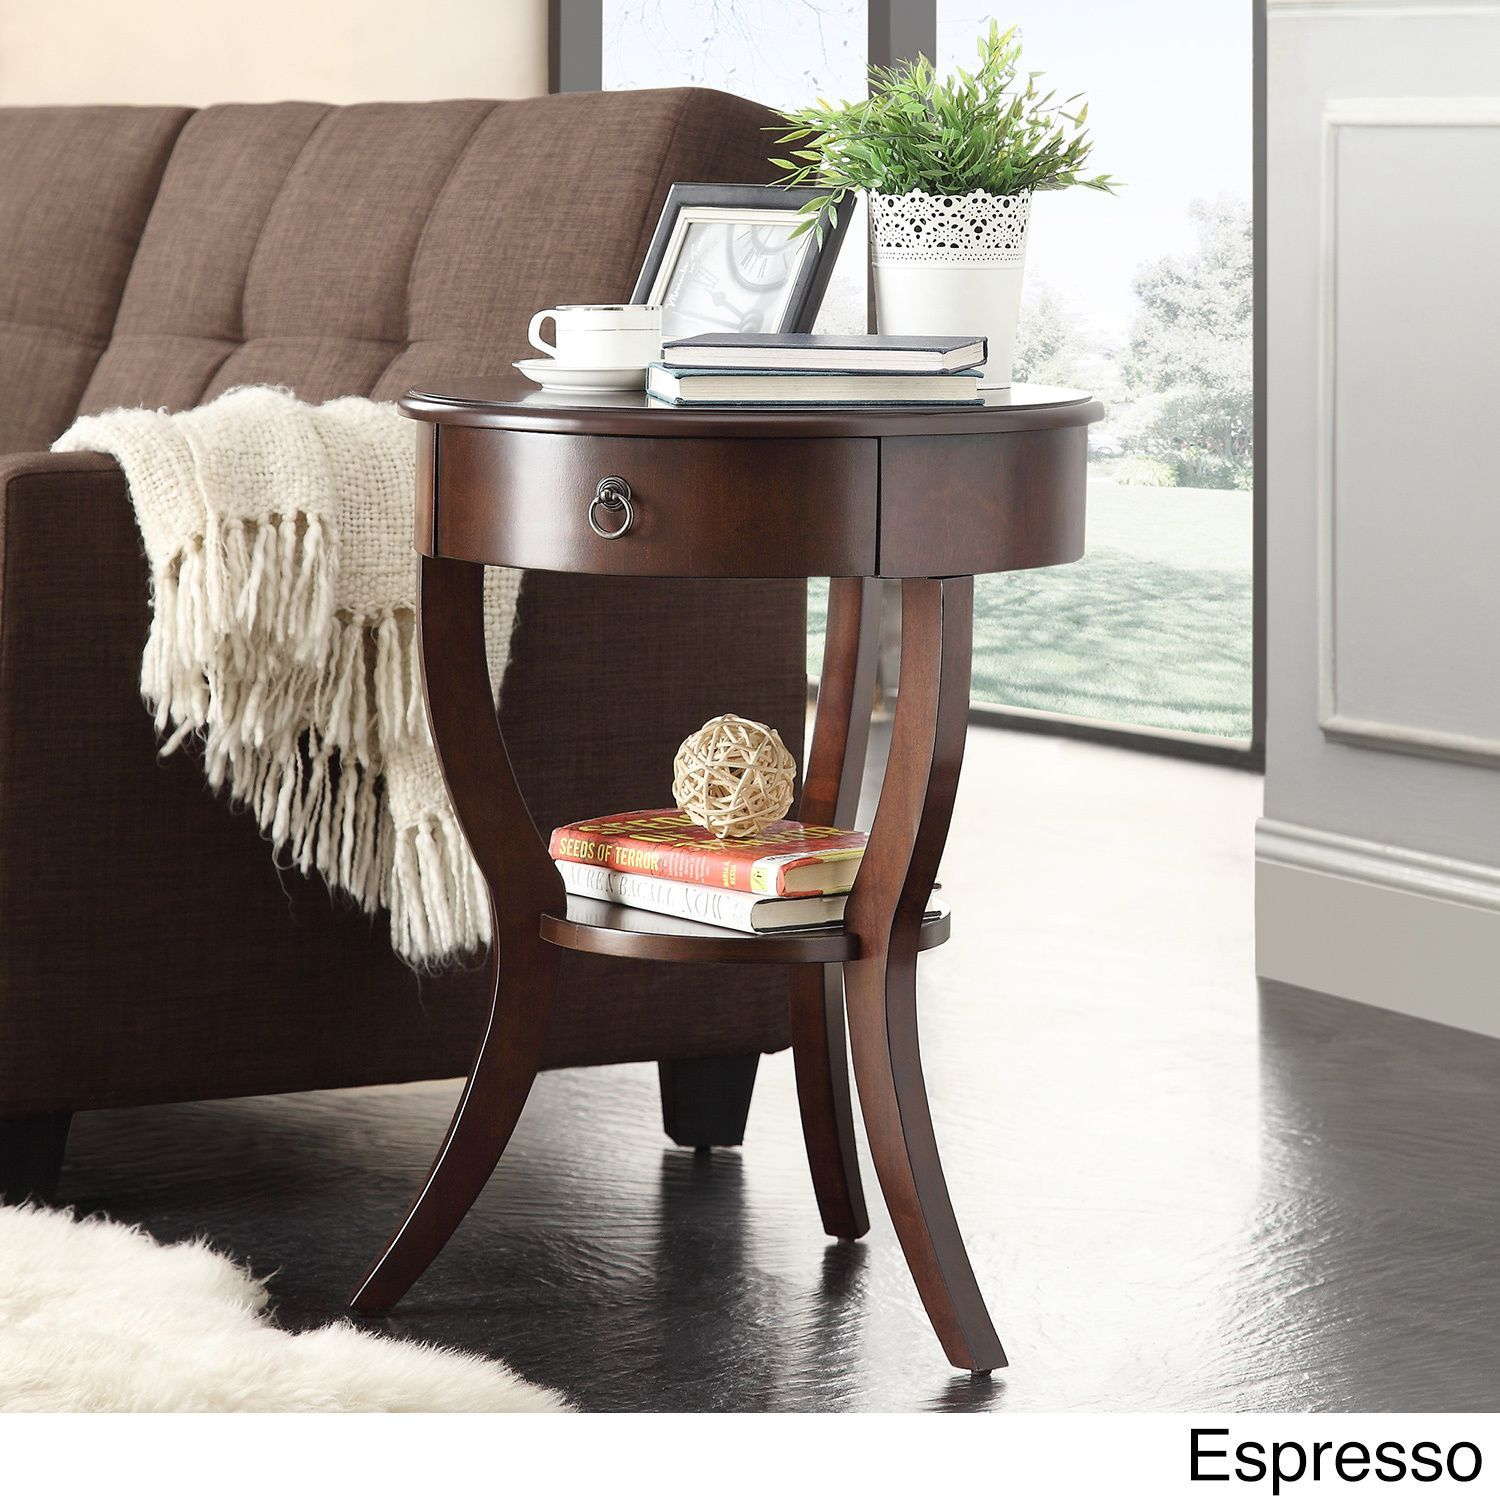 Burkhardt Tripod Round Wood Accent Table by Inspire Q (Espresso), Brown,  Size